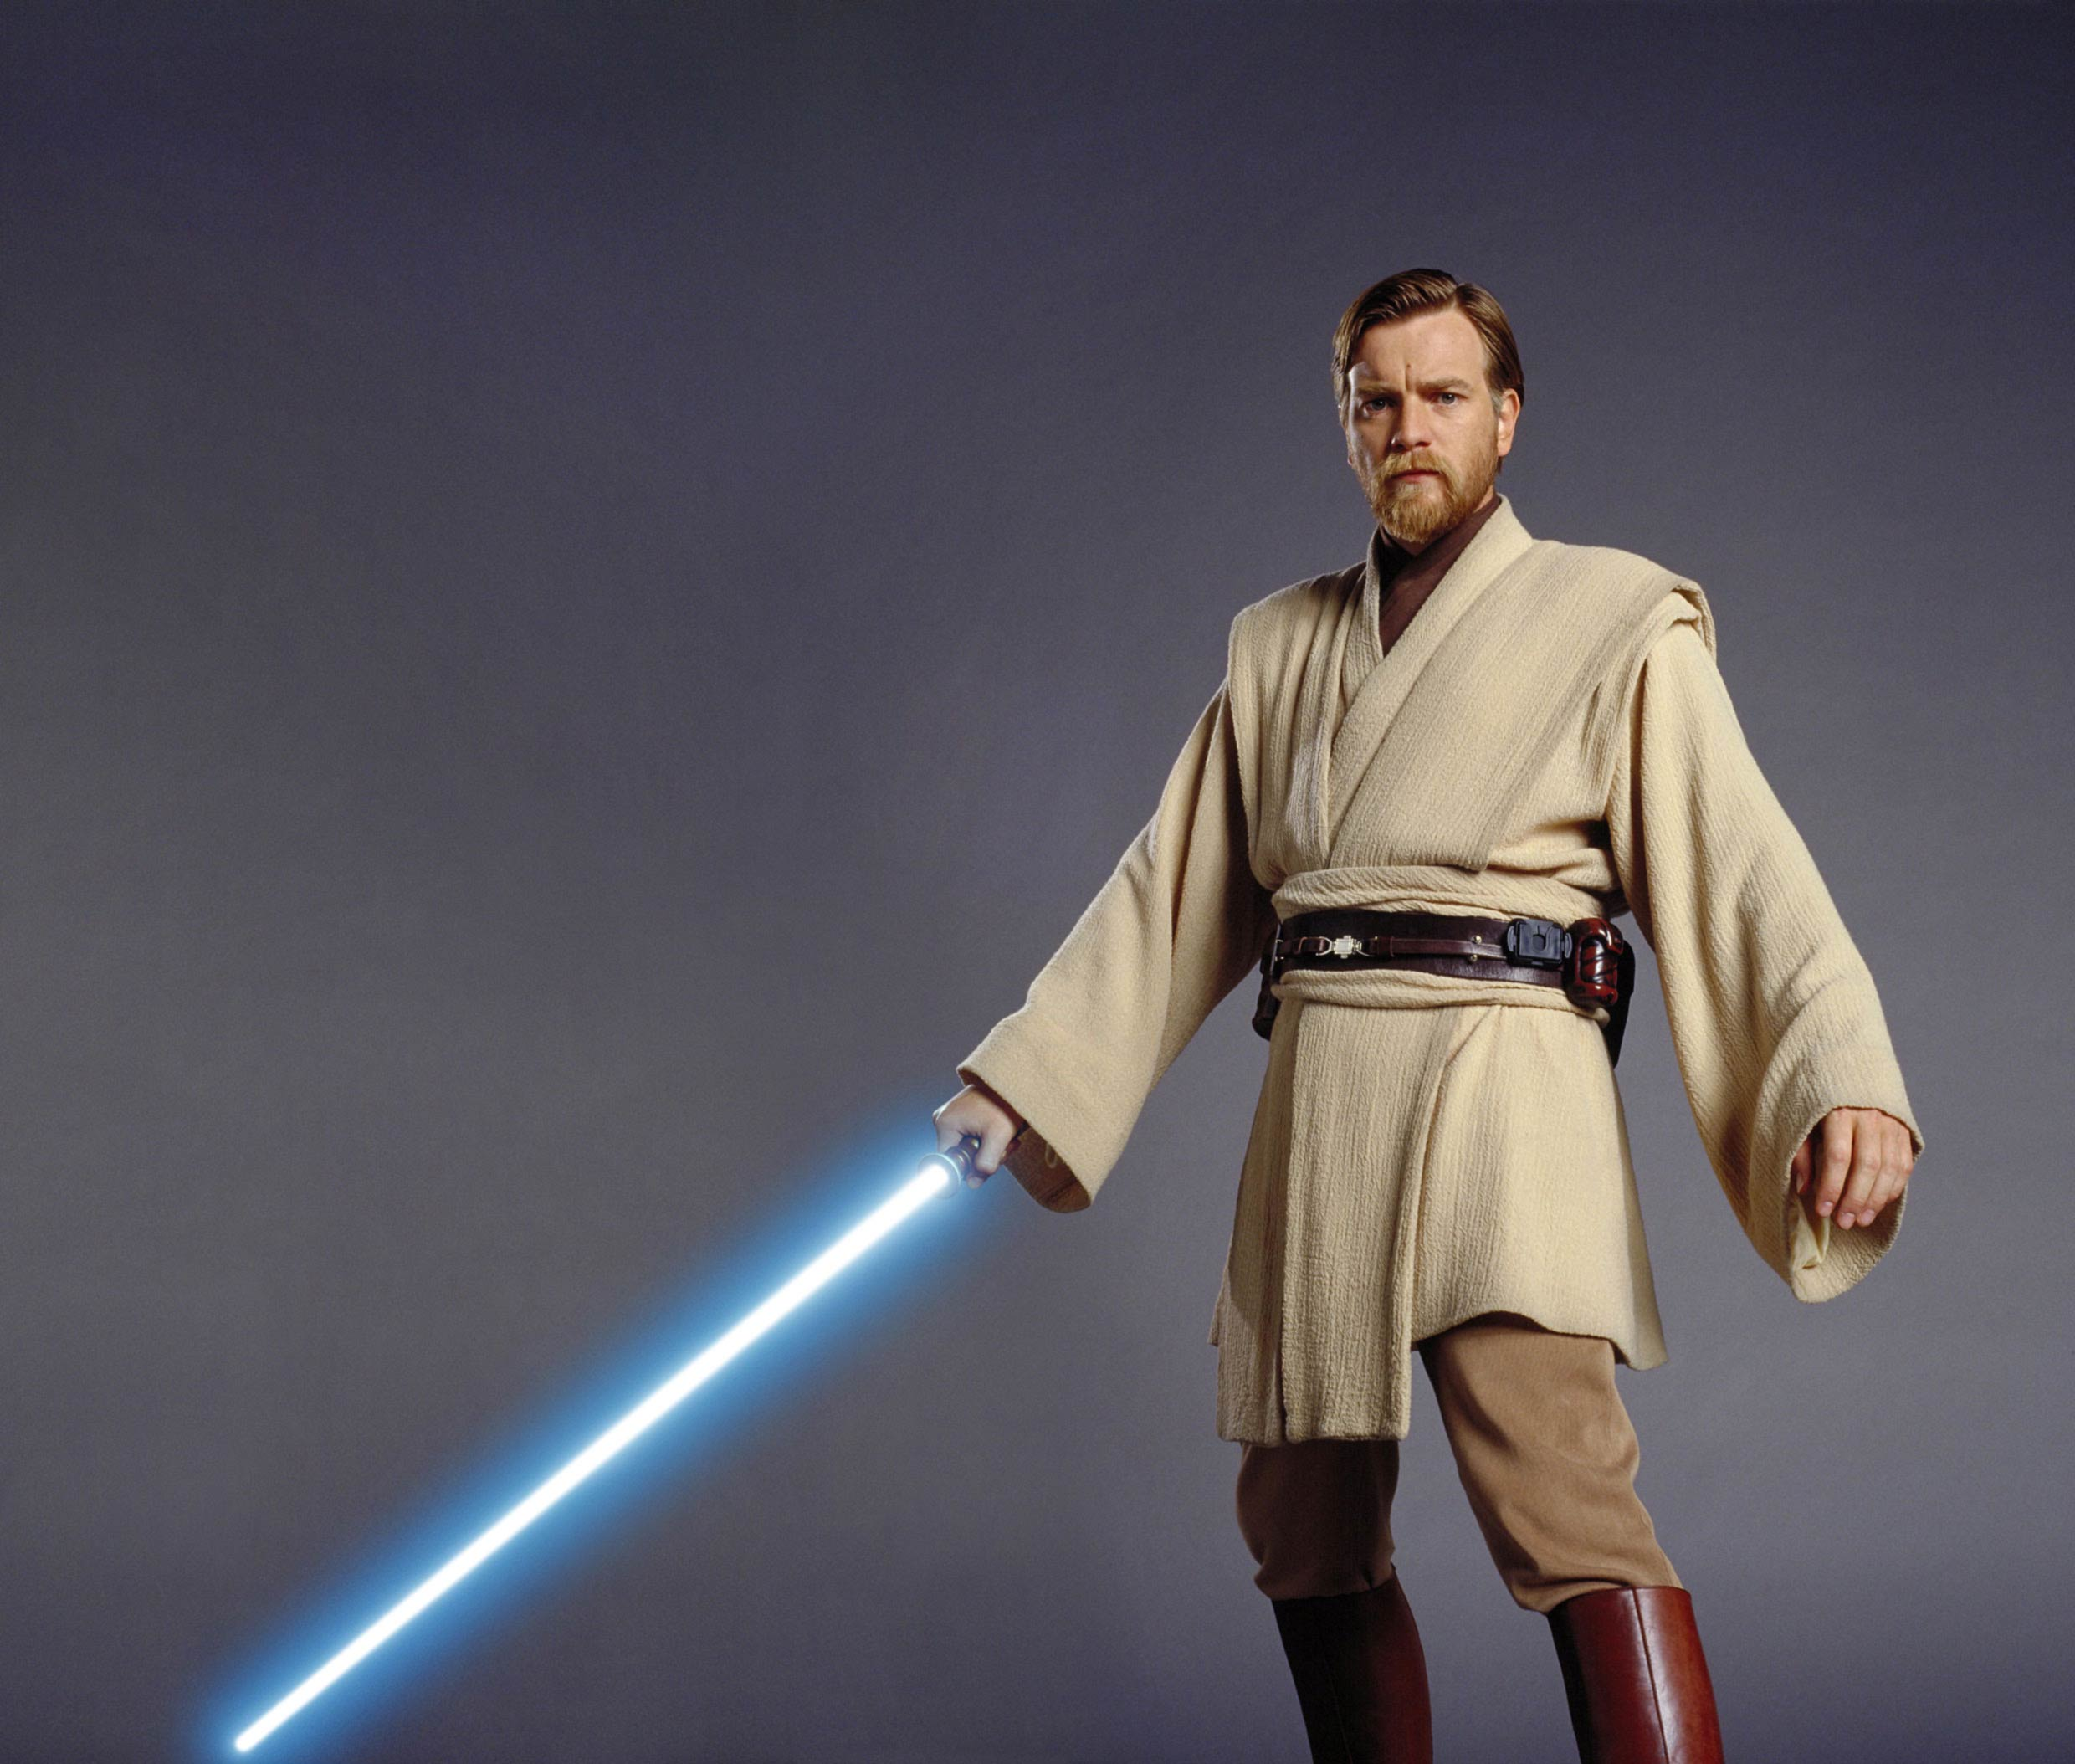 Star Wars Episode 3 Revenge of the Sith Obi-Wan